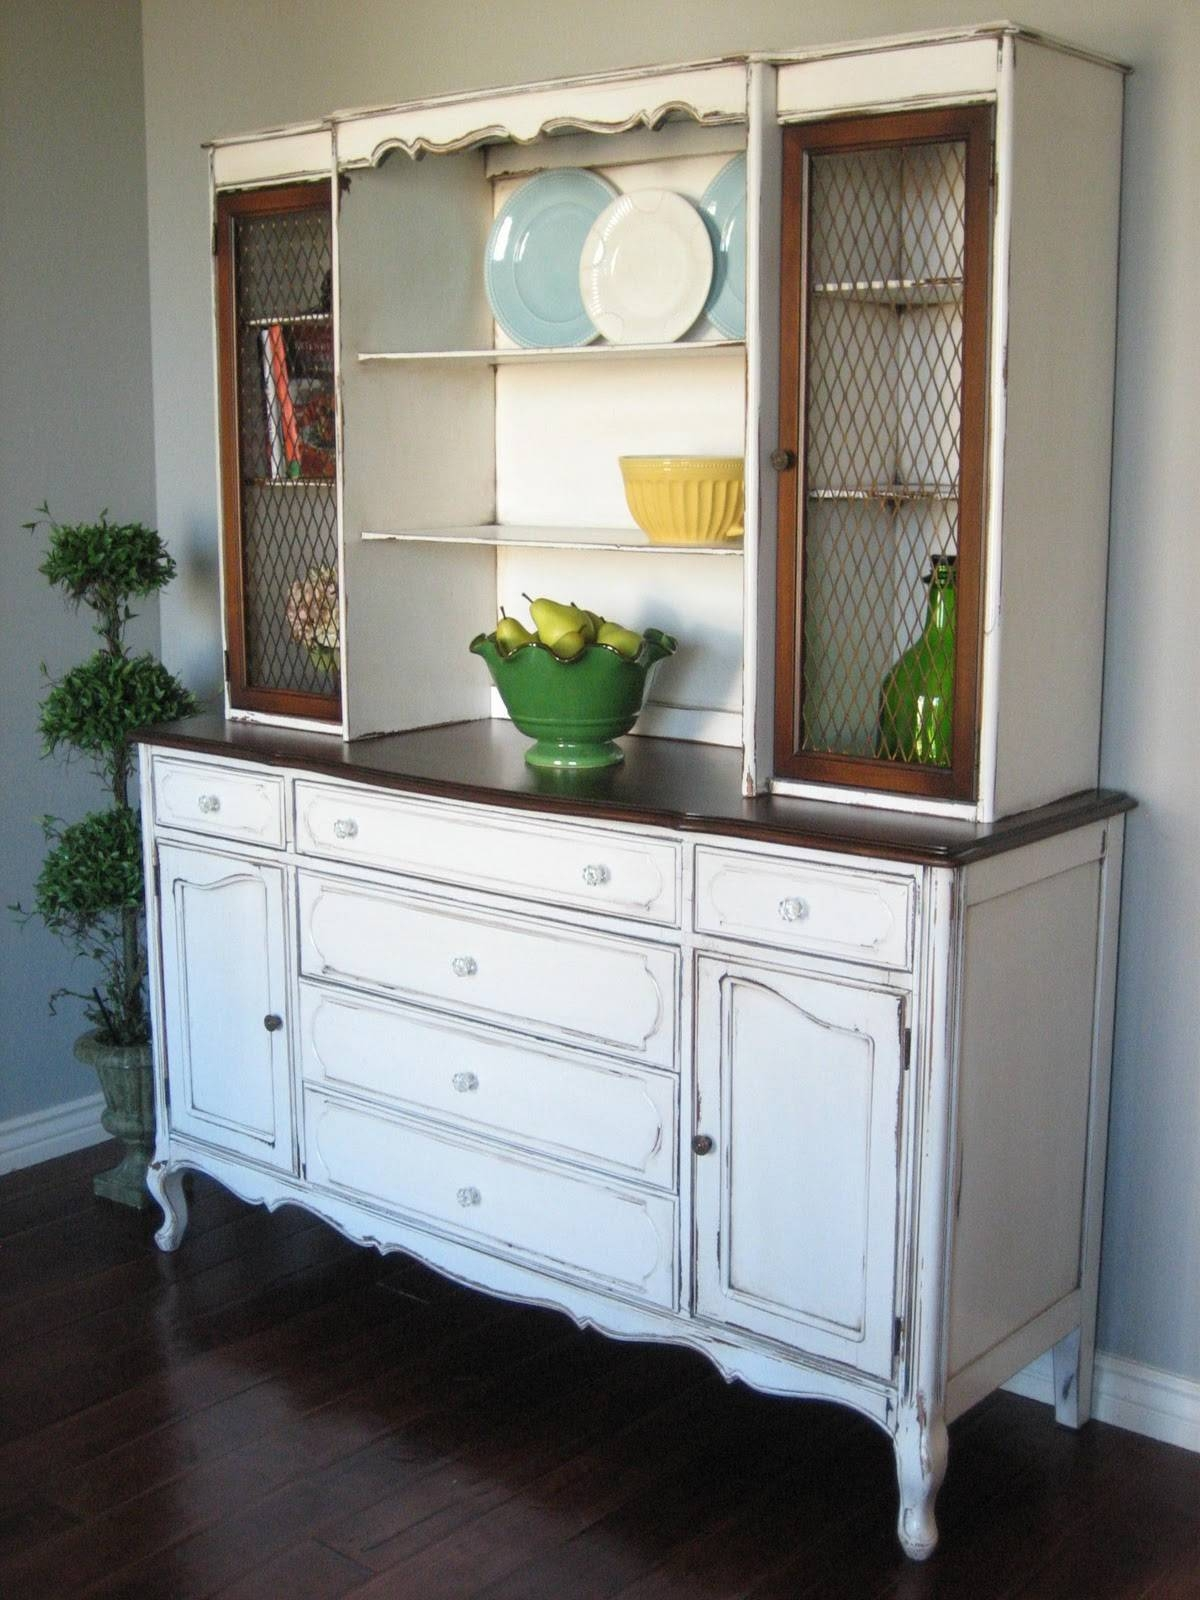 Sideboards. Amazing Rustic Buffet And Hutch: Rustic-Buffet-And intended for Country Sideboards (Image 11 of 30)